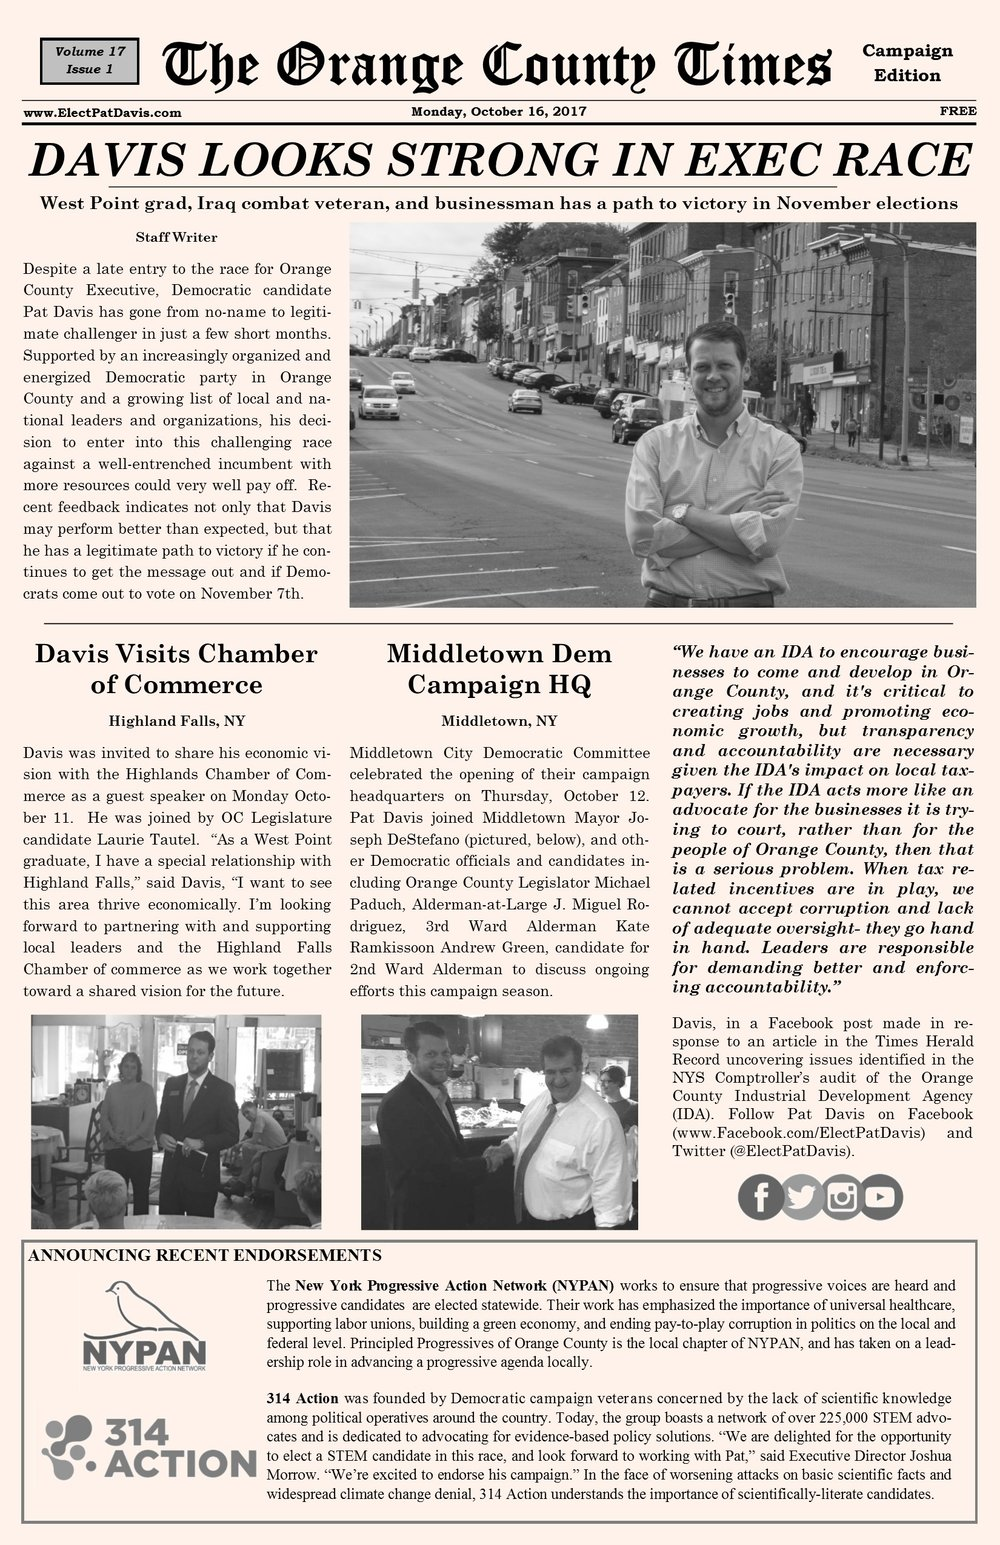 Davis Newsletter (16 October) REVISED.pdf.jpg